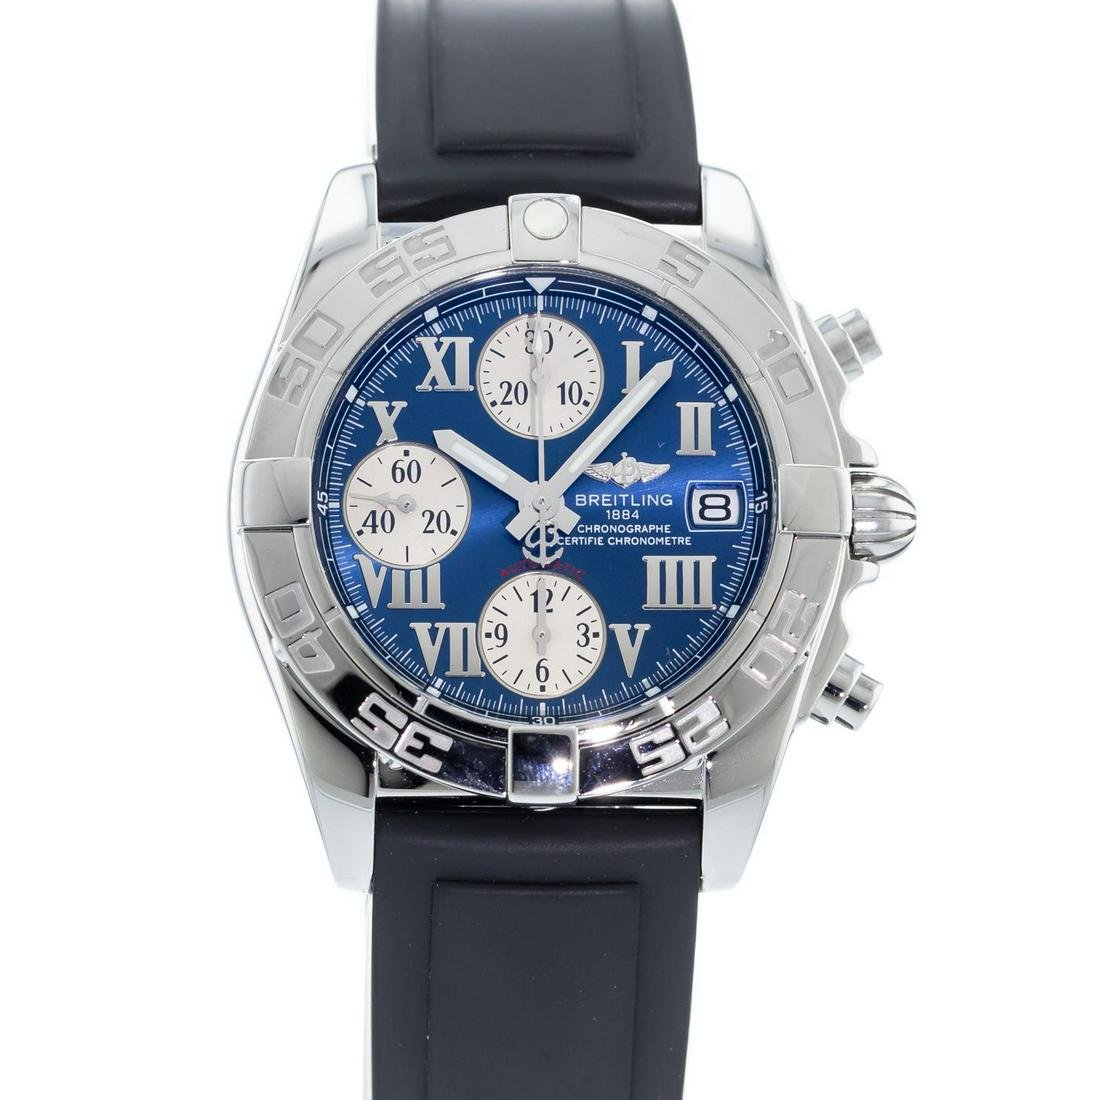 BREITLING GALACTIC CHRONO A13358L2 MEN'S WATCH